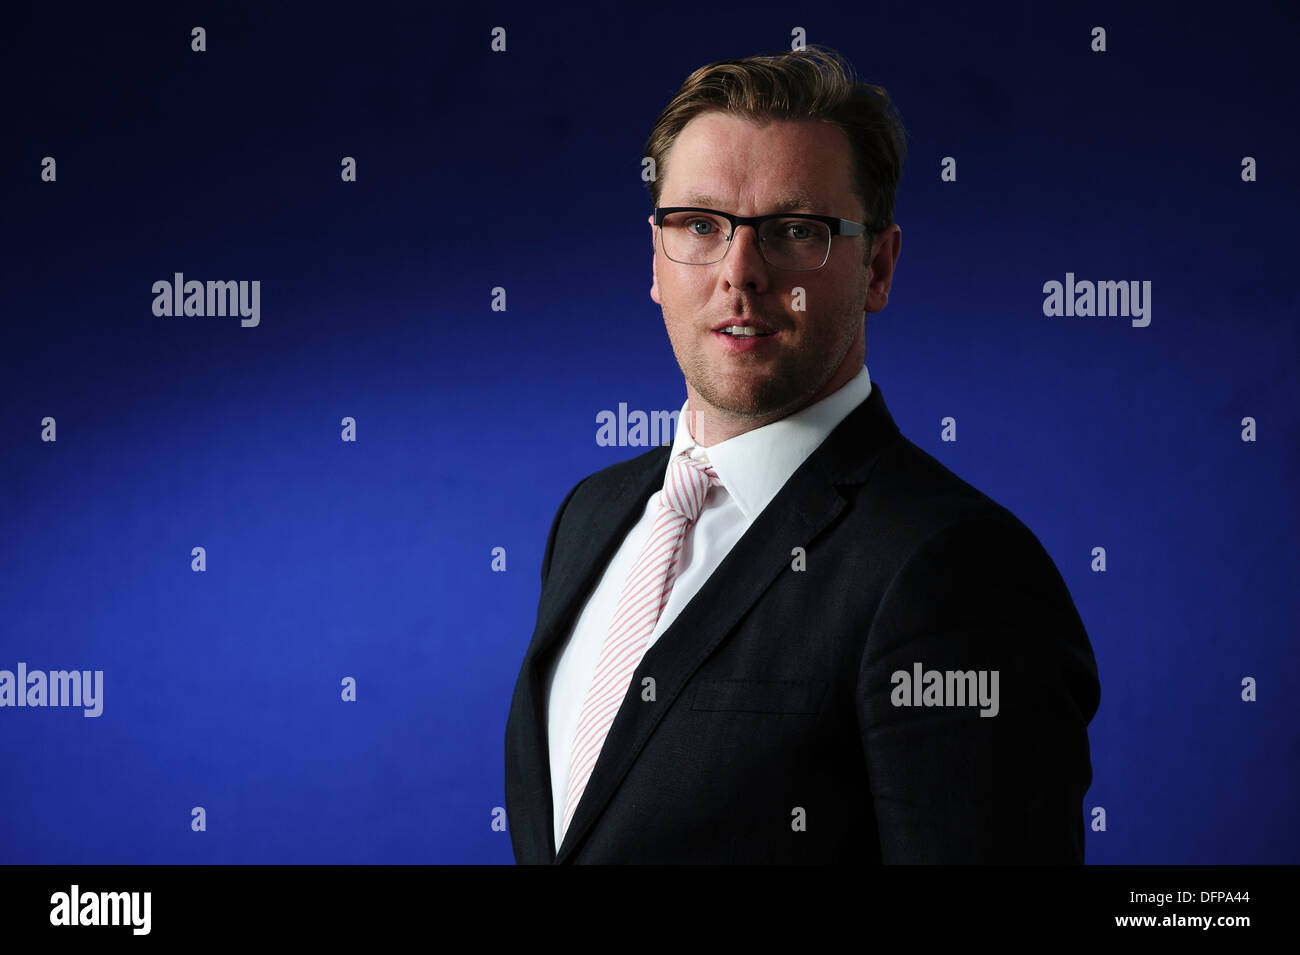 Damian Barr Writer, columnist, playwright and salonnière, attending at the Edinburgh International Book Festival 2013. - Stock Image